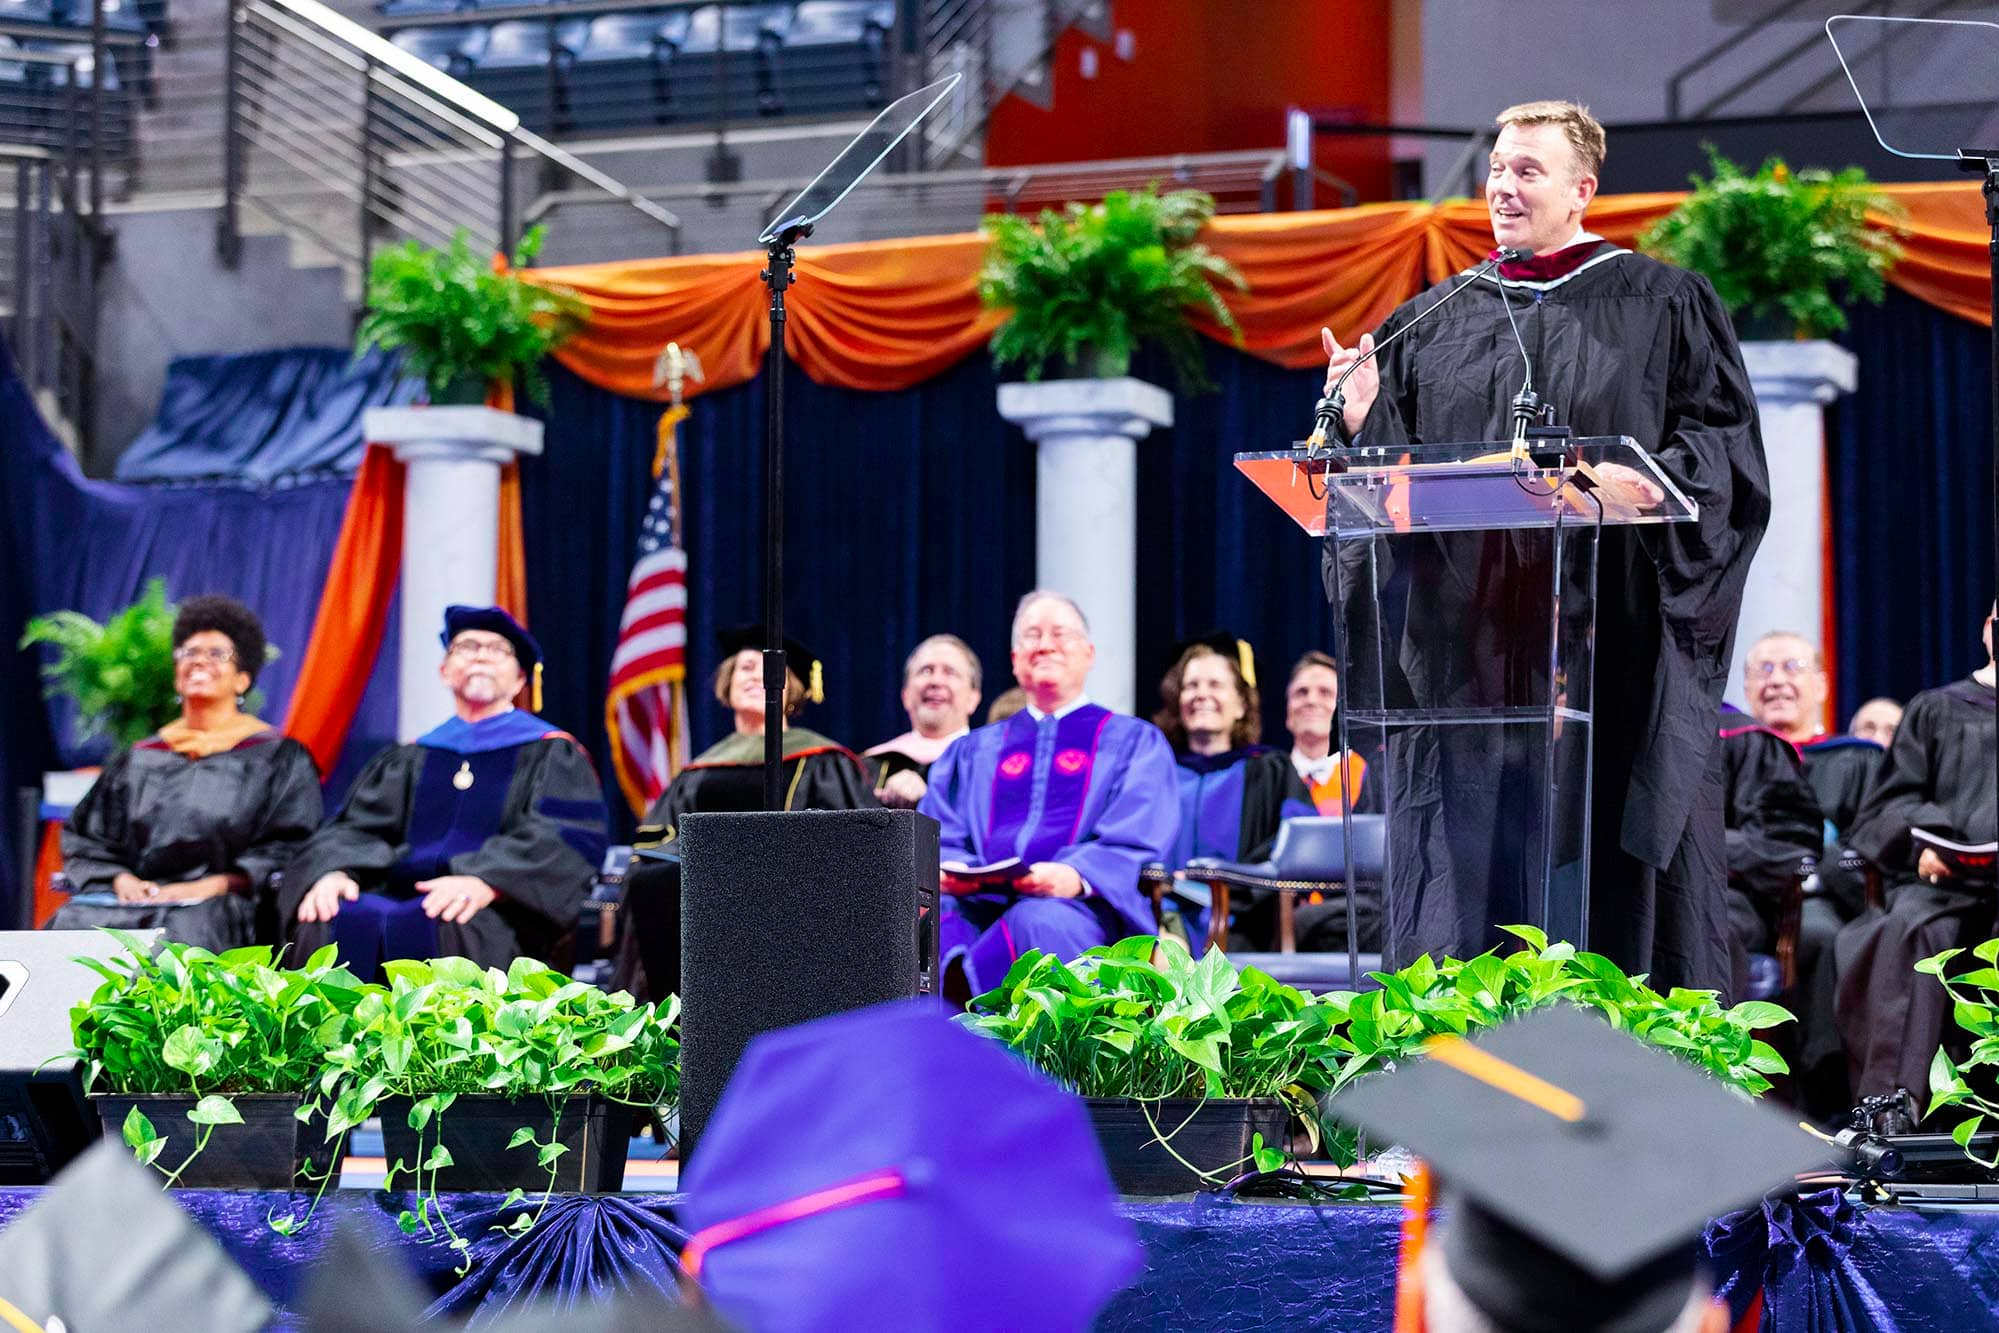 UF professor Ted Spiker addresses Friday's doctoral ceremony